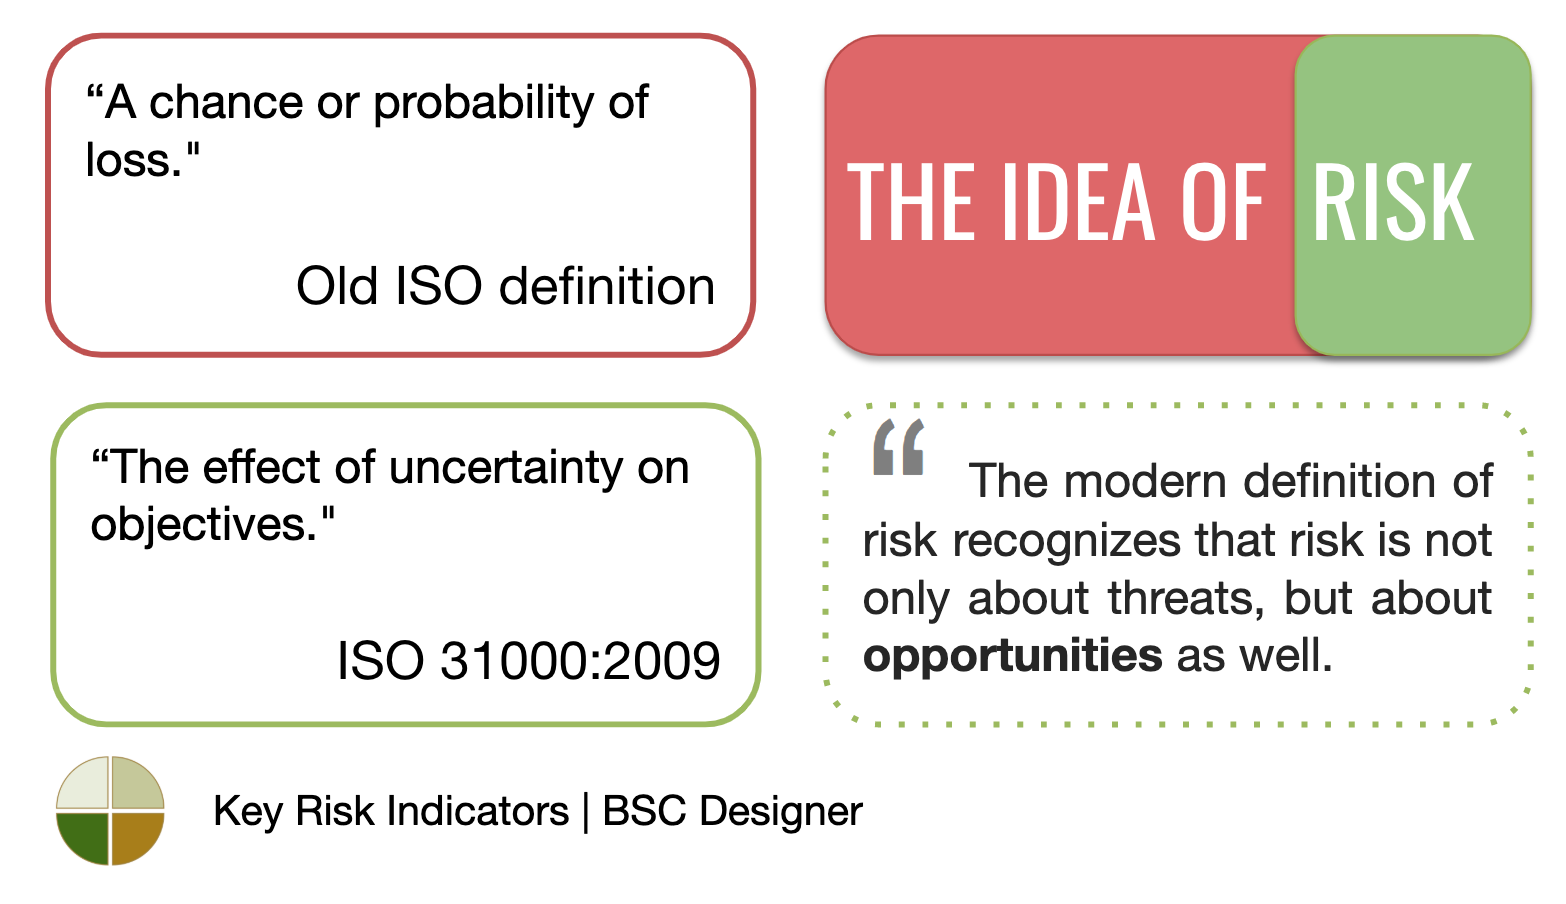 The idea of risk